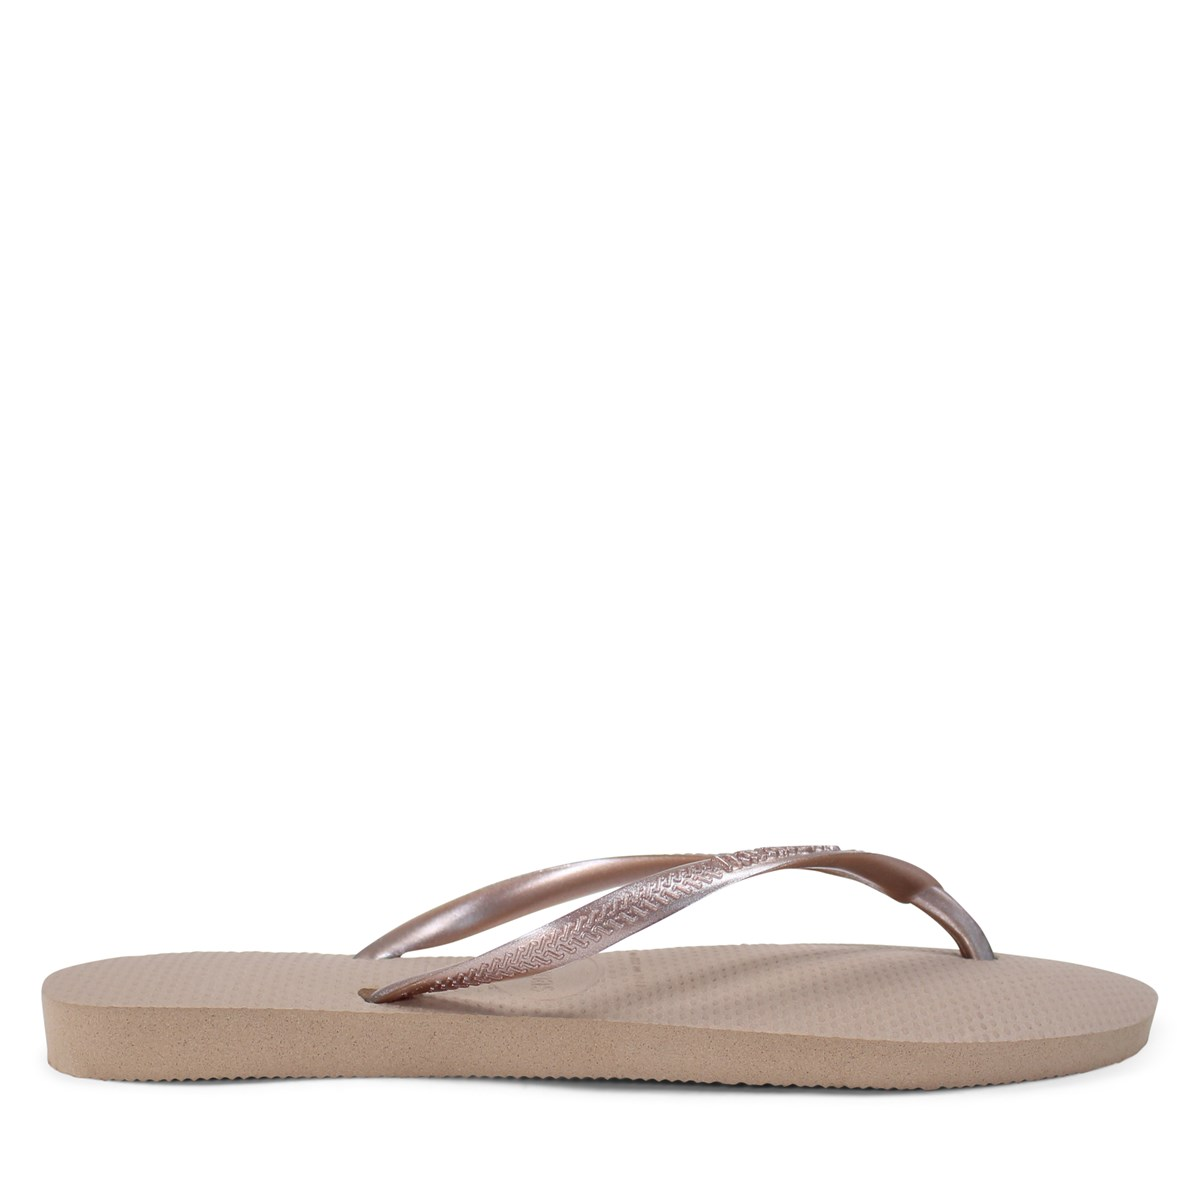 9c2415ae8f0d4 Women s Slim Flip-Flop in Rose Gold. Previous. default view · ALT1